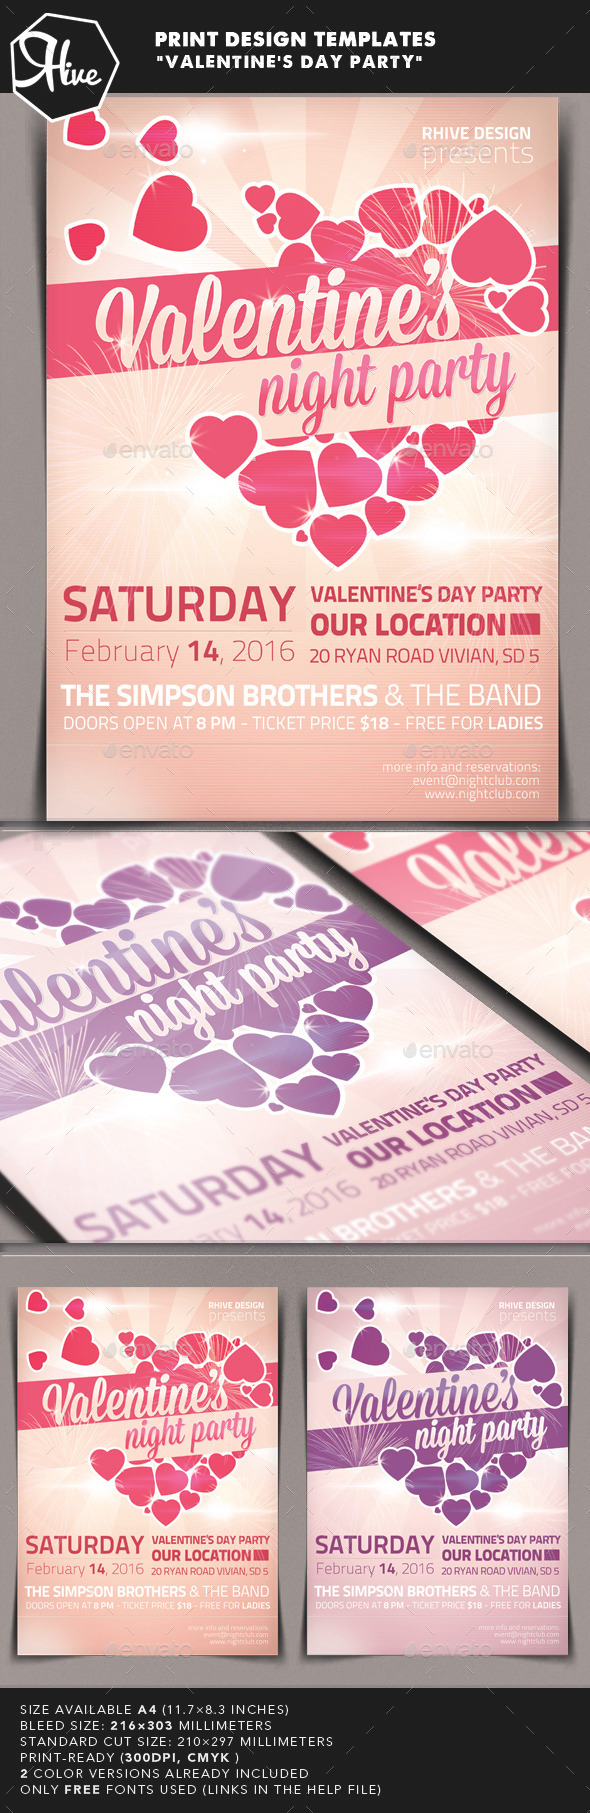 Valentine's Day Event - Print Templates